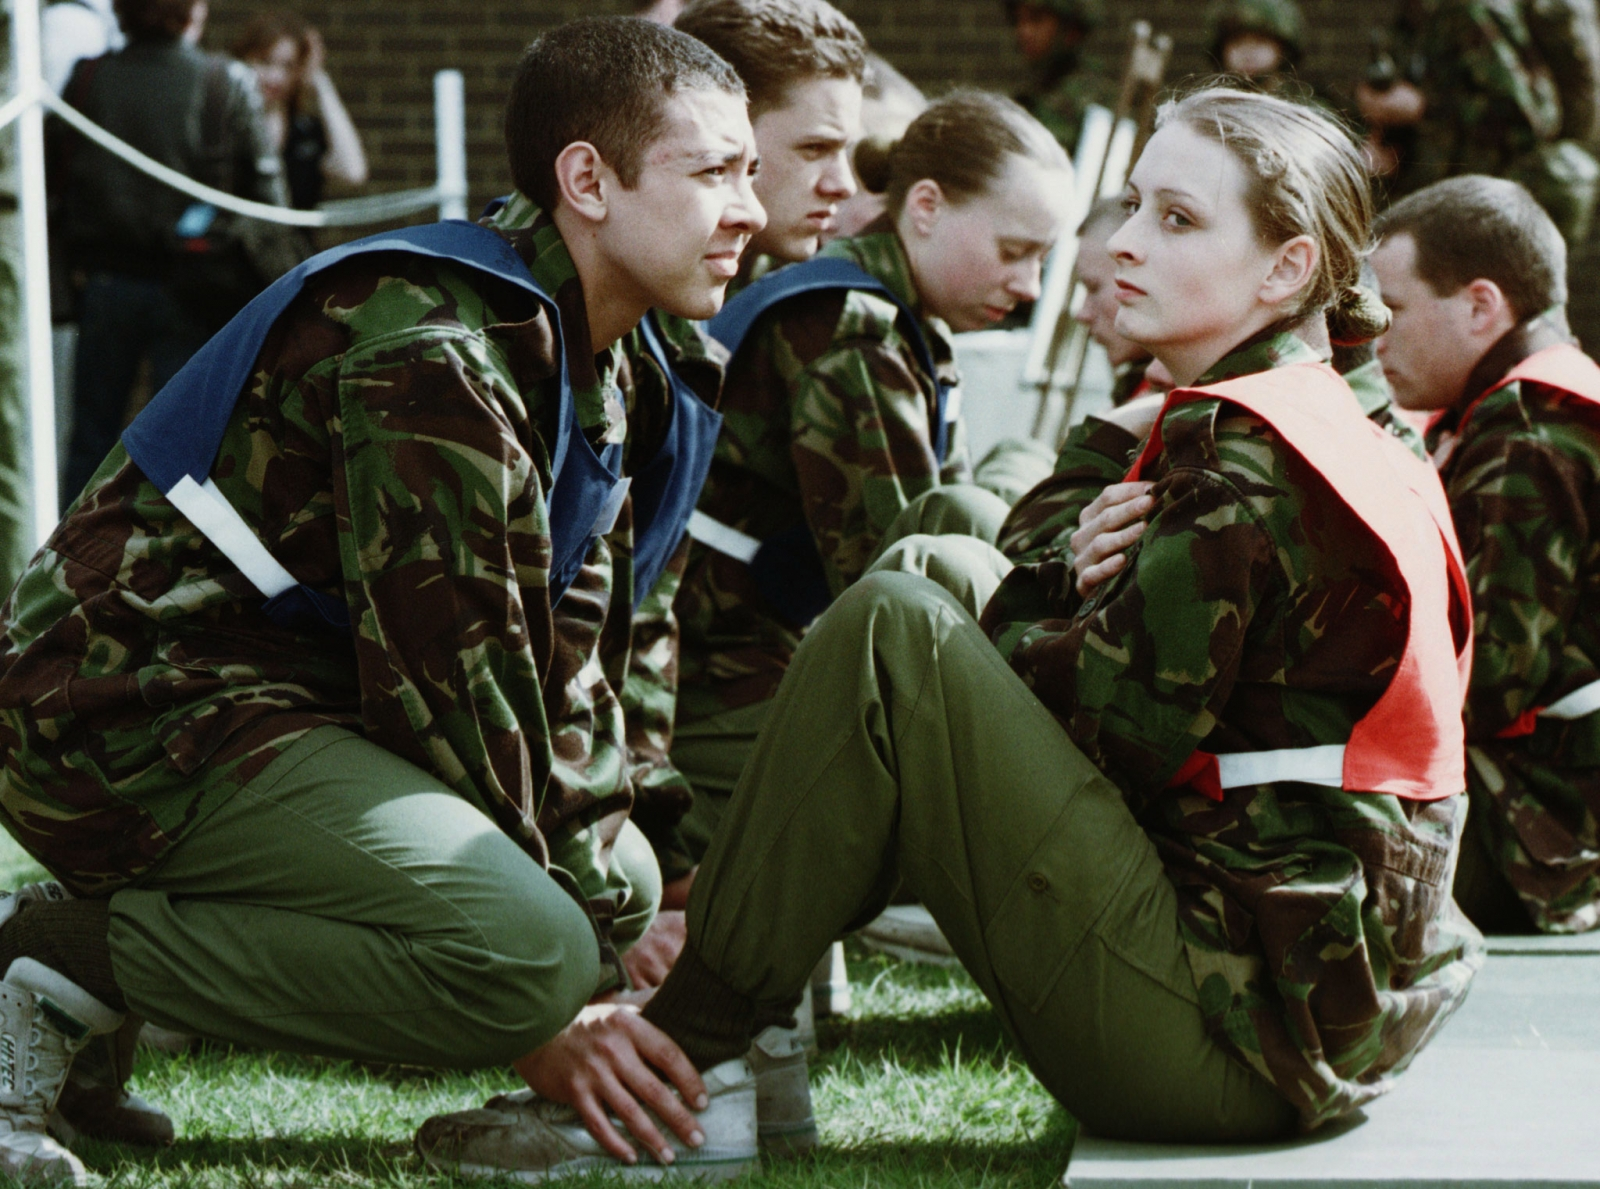 A female recruit does situps while a male recruit holds her ankles during the new equal opportunities physical tests for the British Army in Pirbright